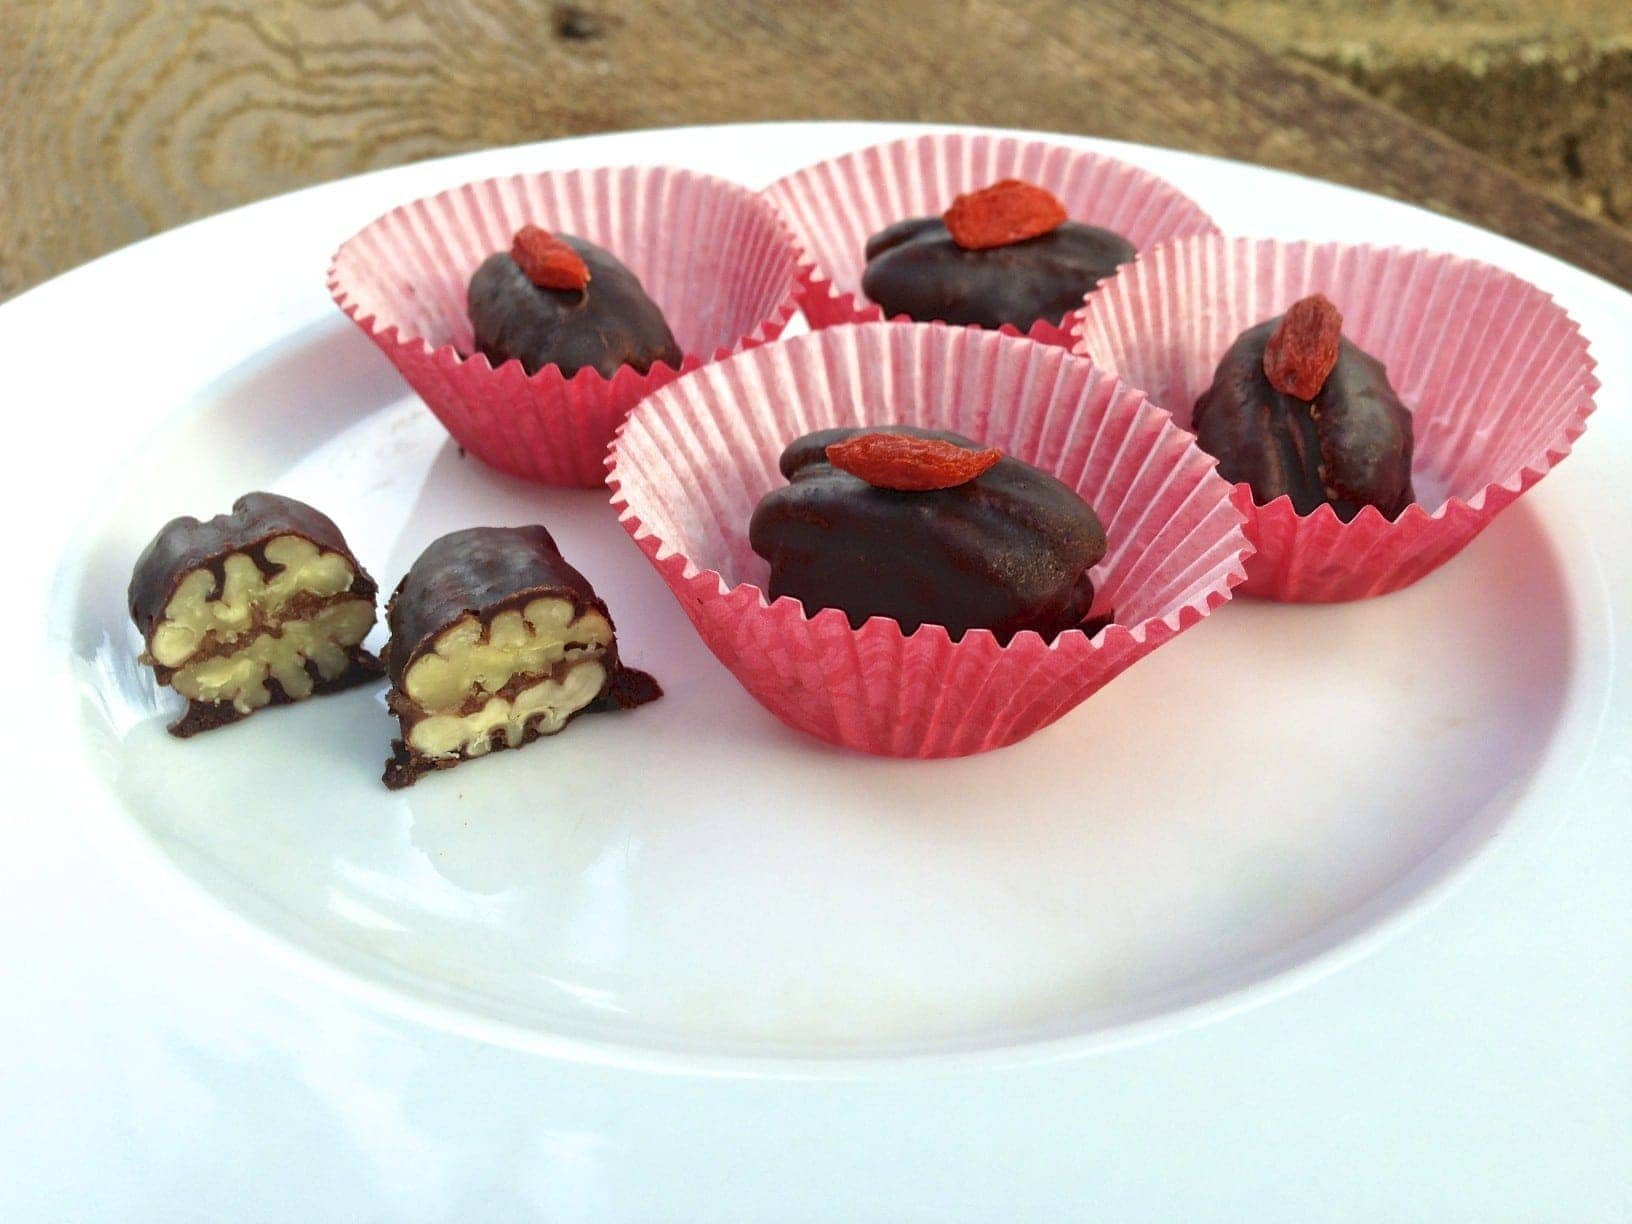 plate with chocolate caramel pecan candies in red paper cups with one by itself cut in half showing texture inside